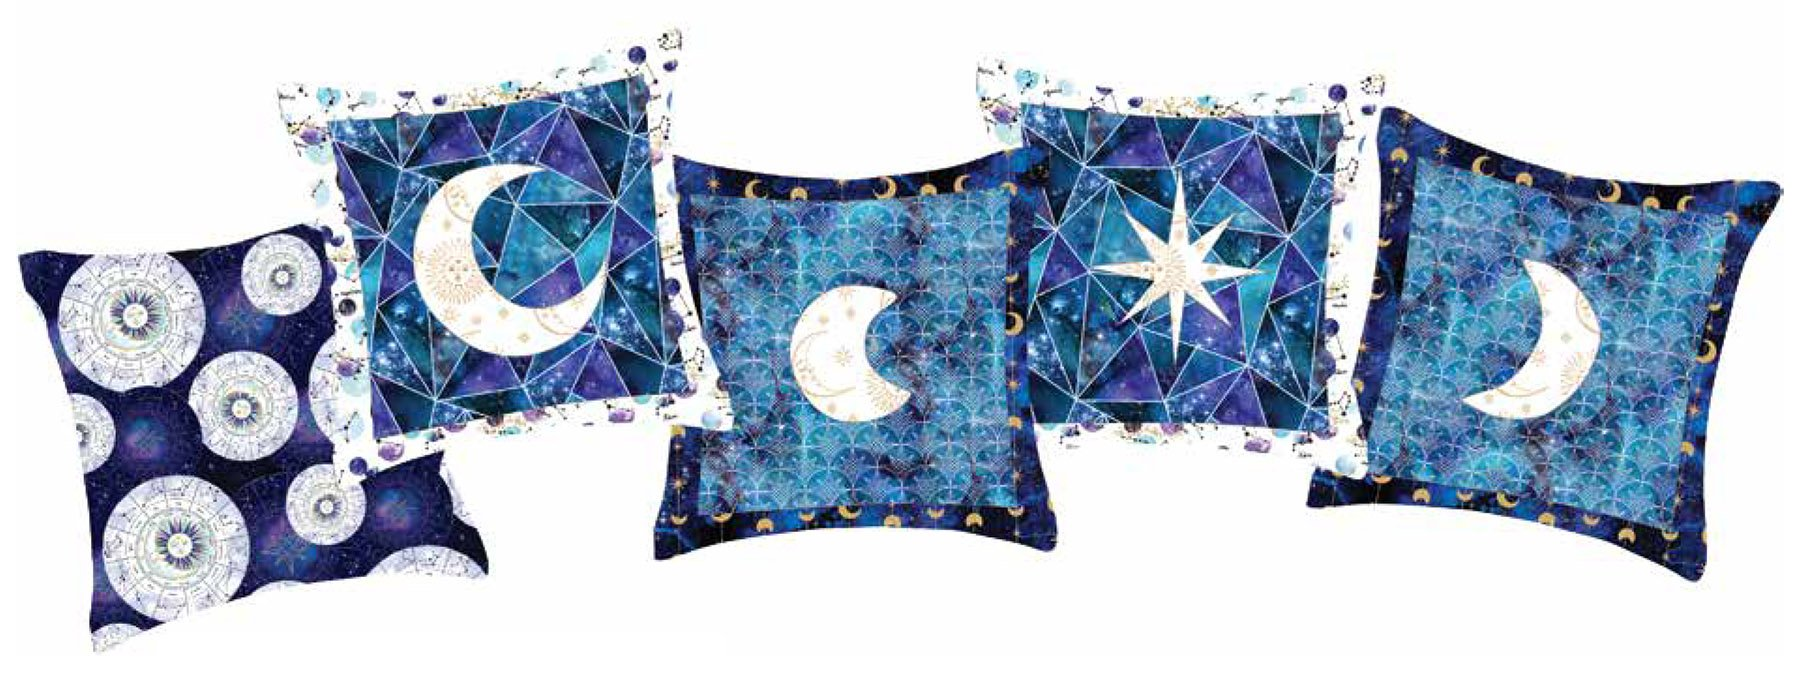 3 Wishes Fabric<br>Magical Galaxy Pillows